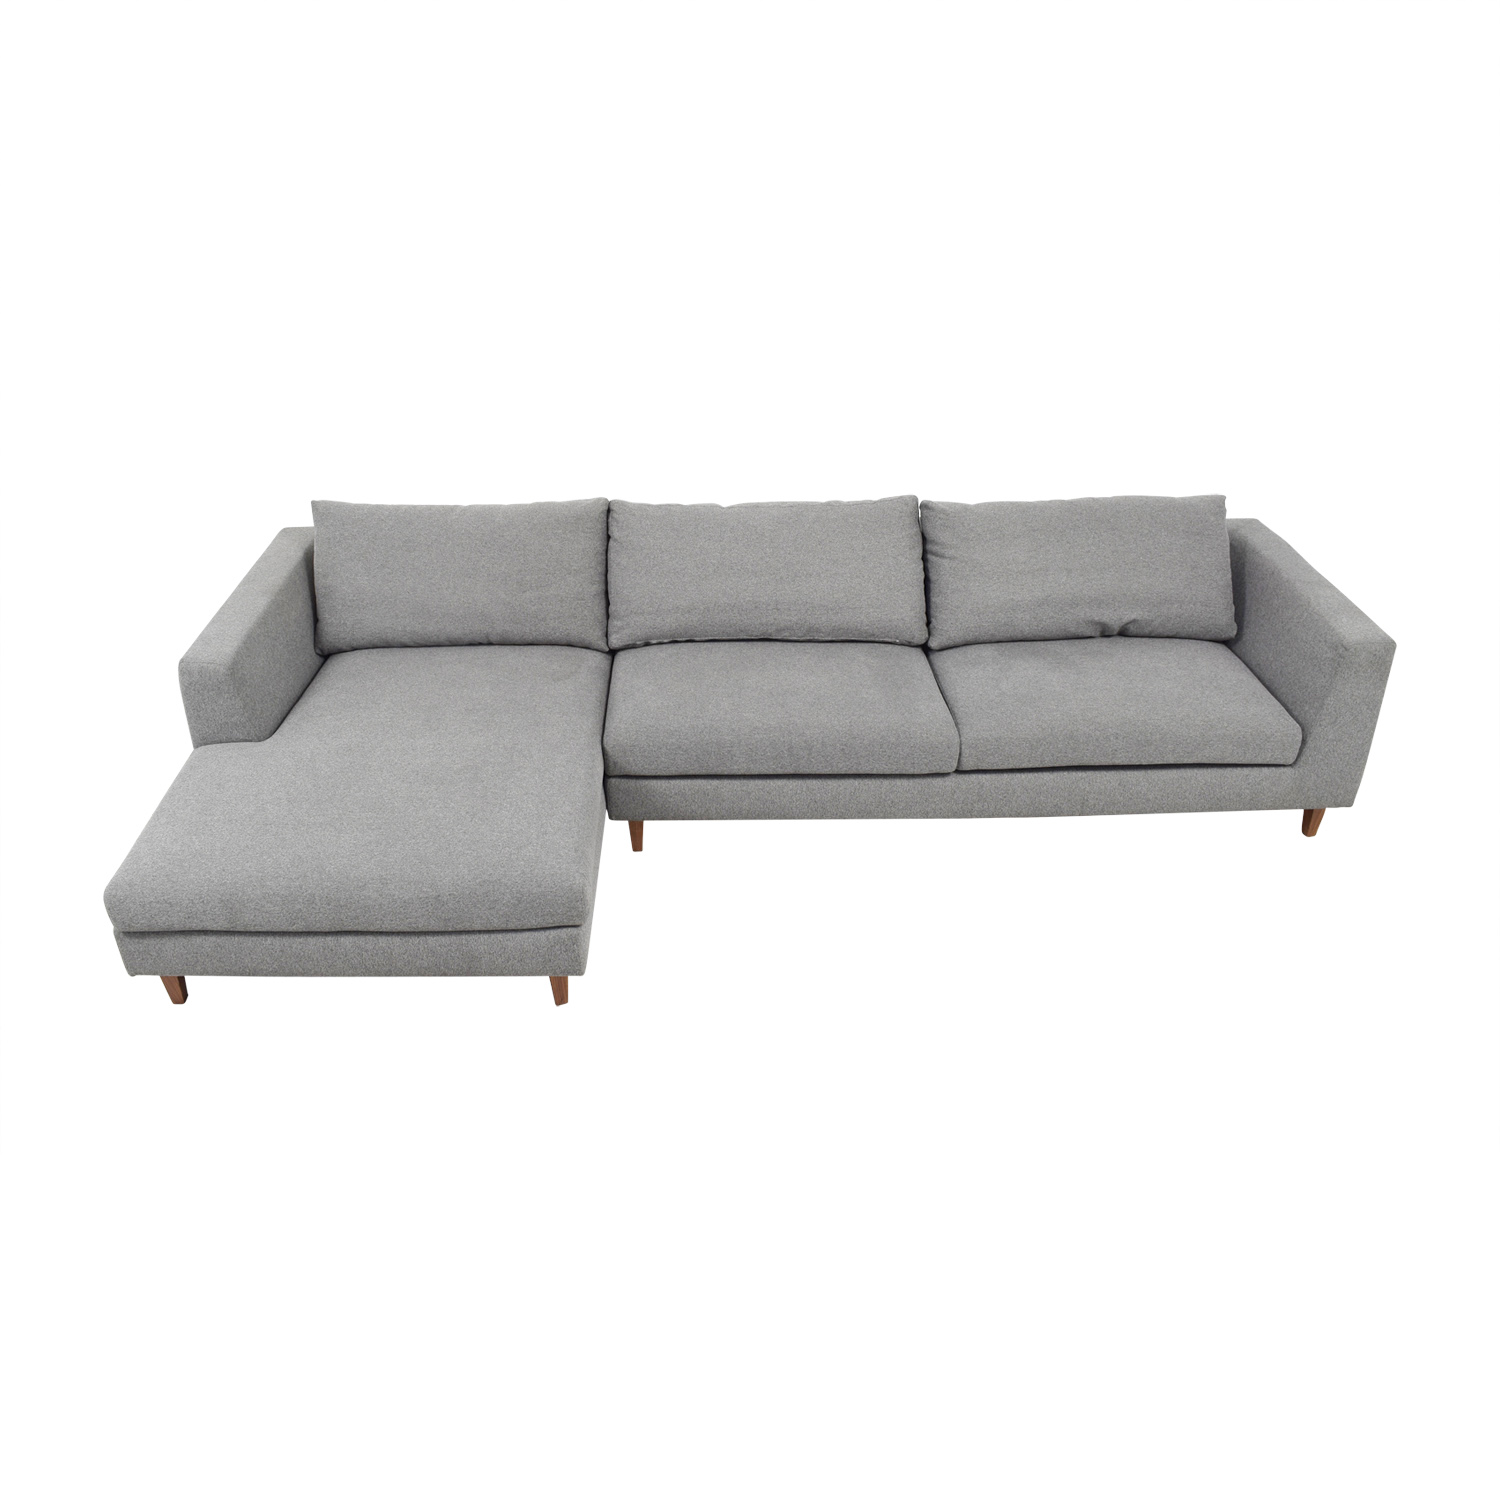 Asher Heather Performance Felt Left Chaise Sectional second hand